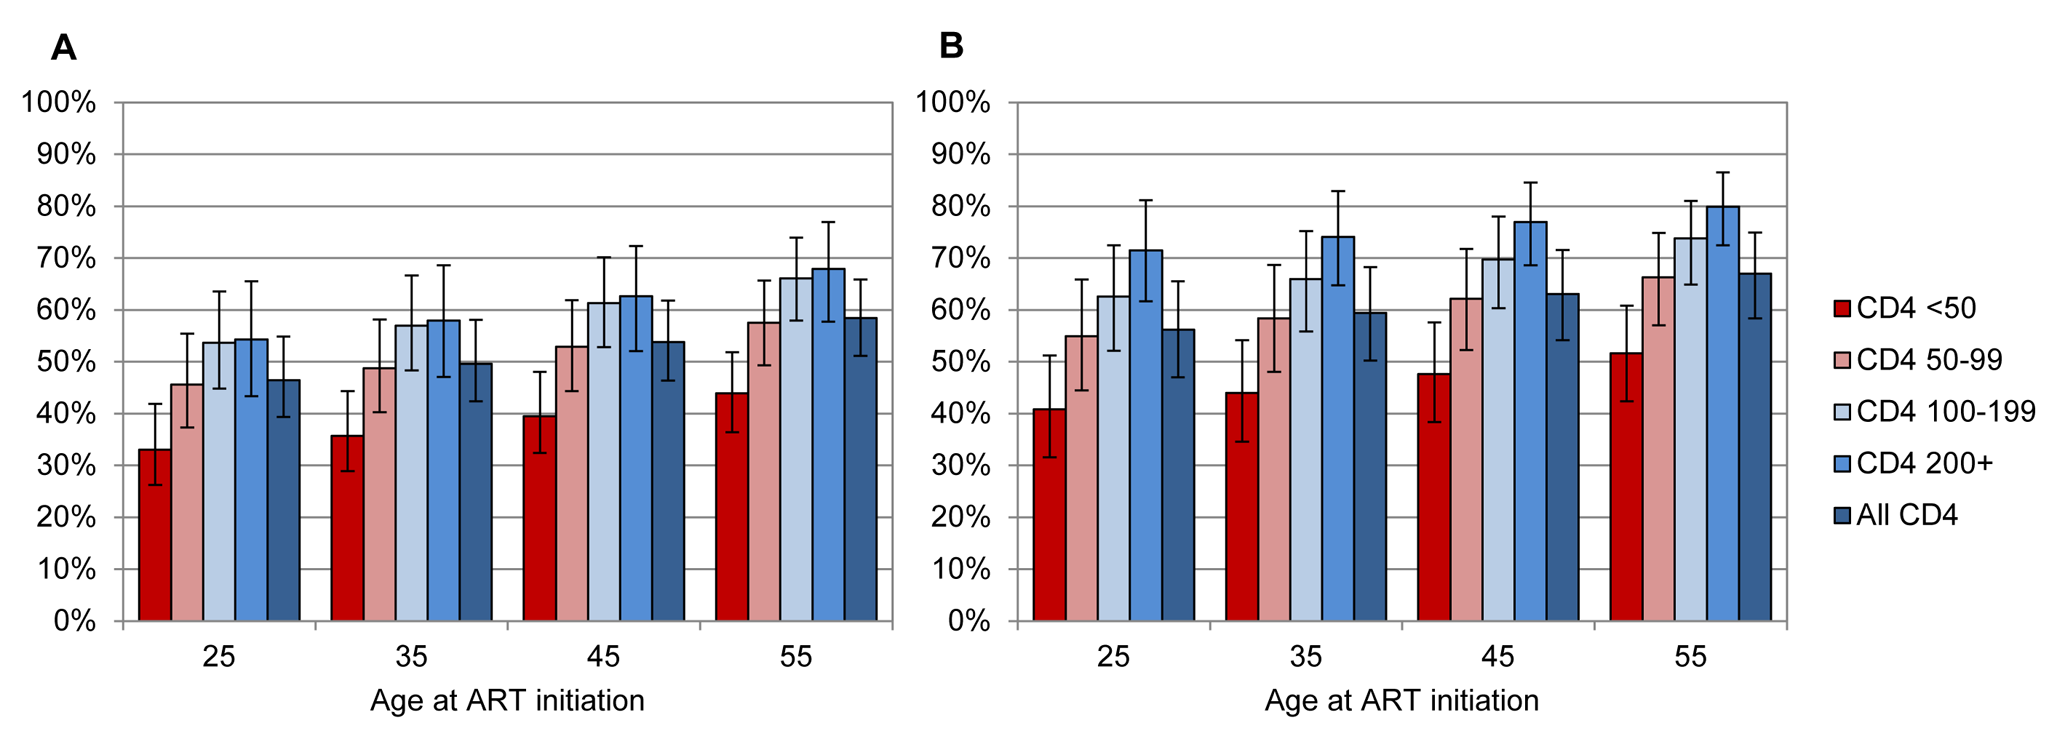 Proportion of individuals starting ART who are expected to die from causes unrelated to HIV.